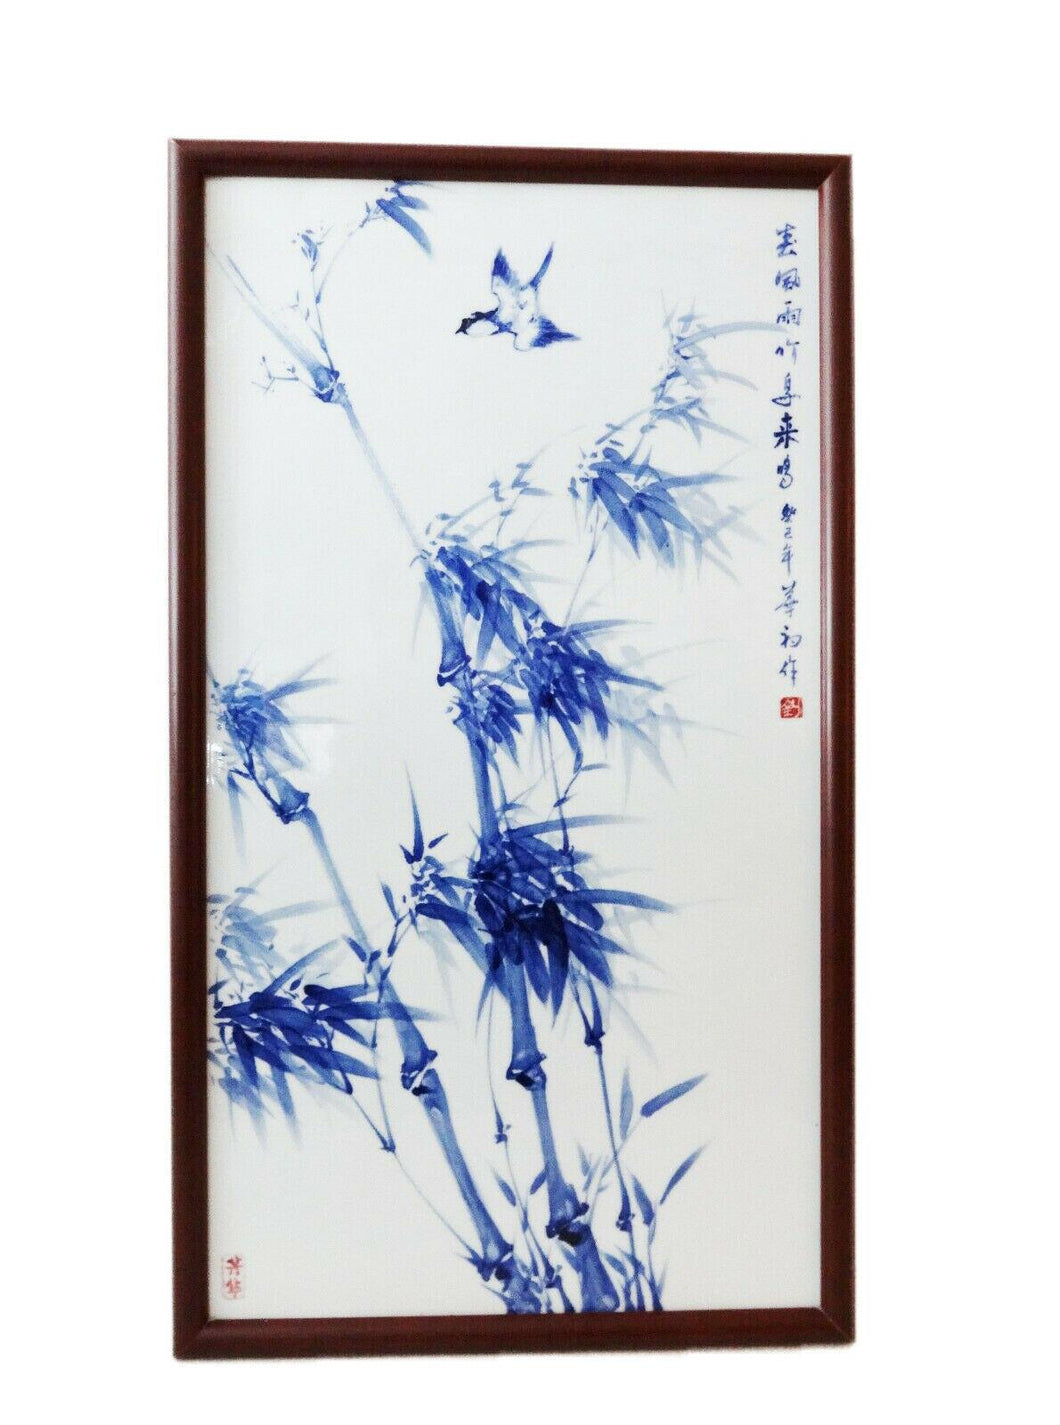 Superb Porcelain Wall Hanging Plaque w/ bird  /bamboo 33.5